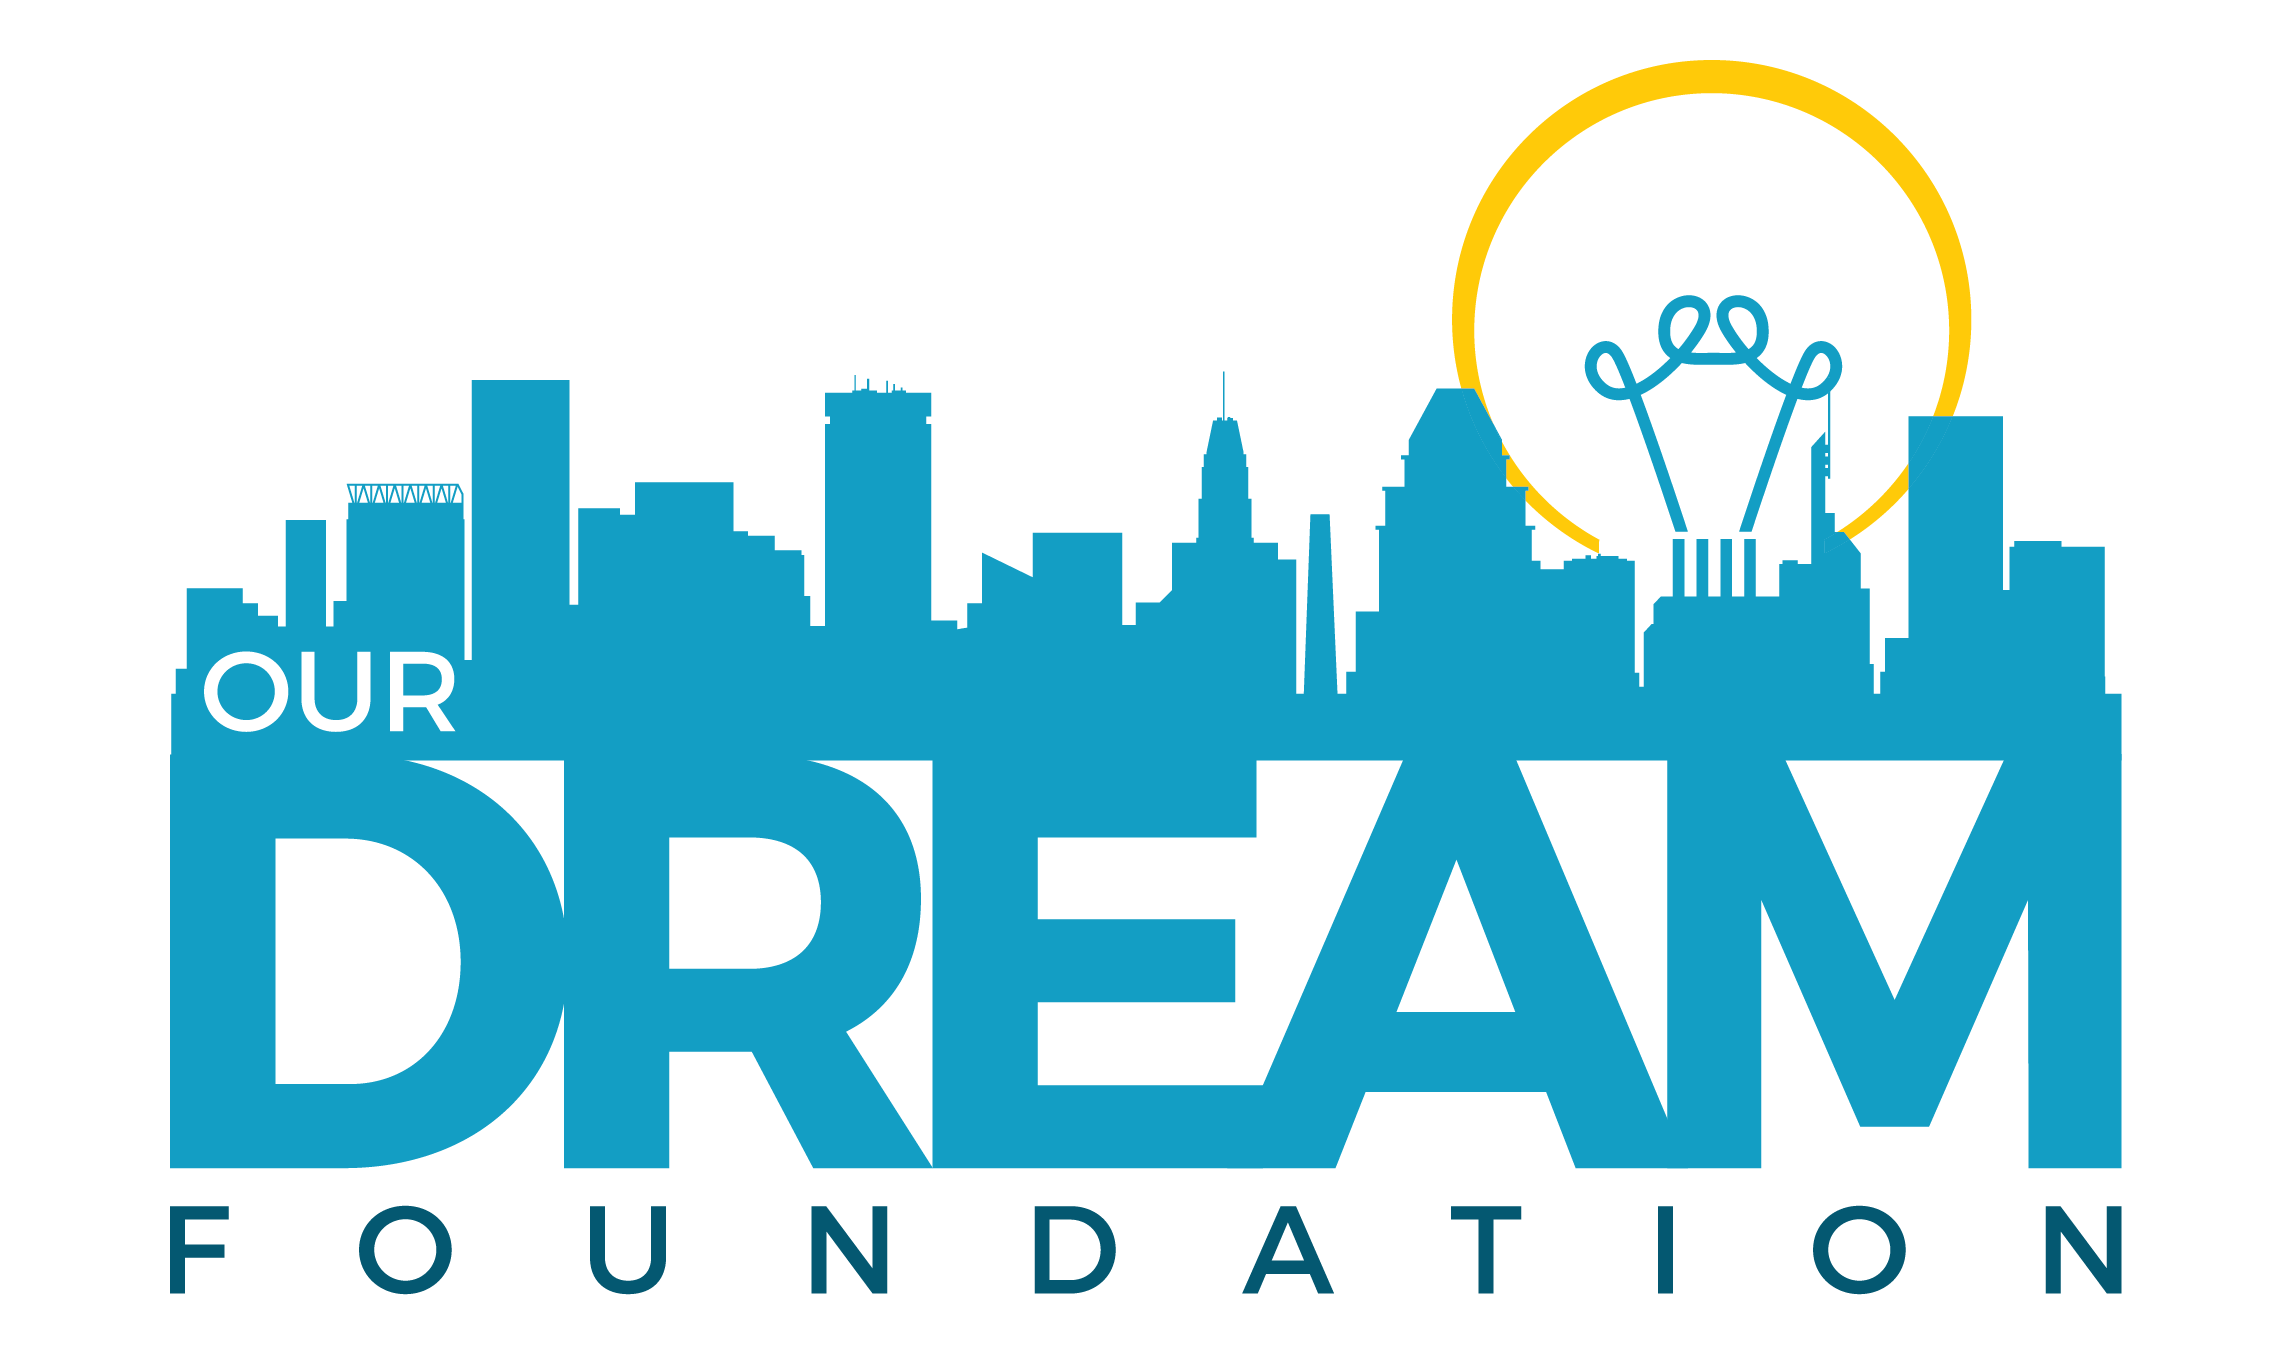 Our D.R.E.A.M Foundation